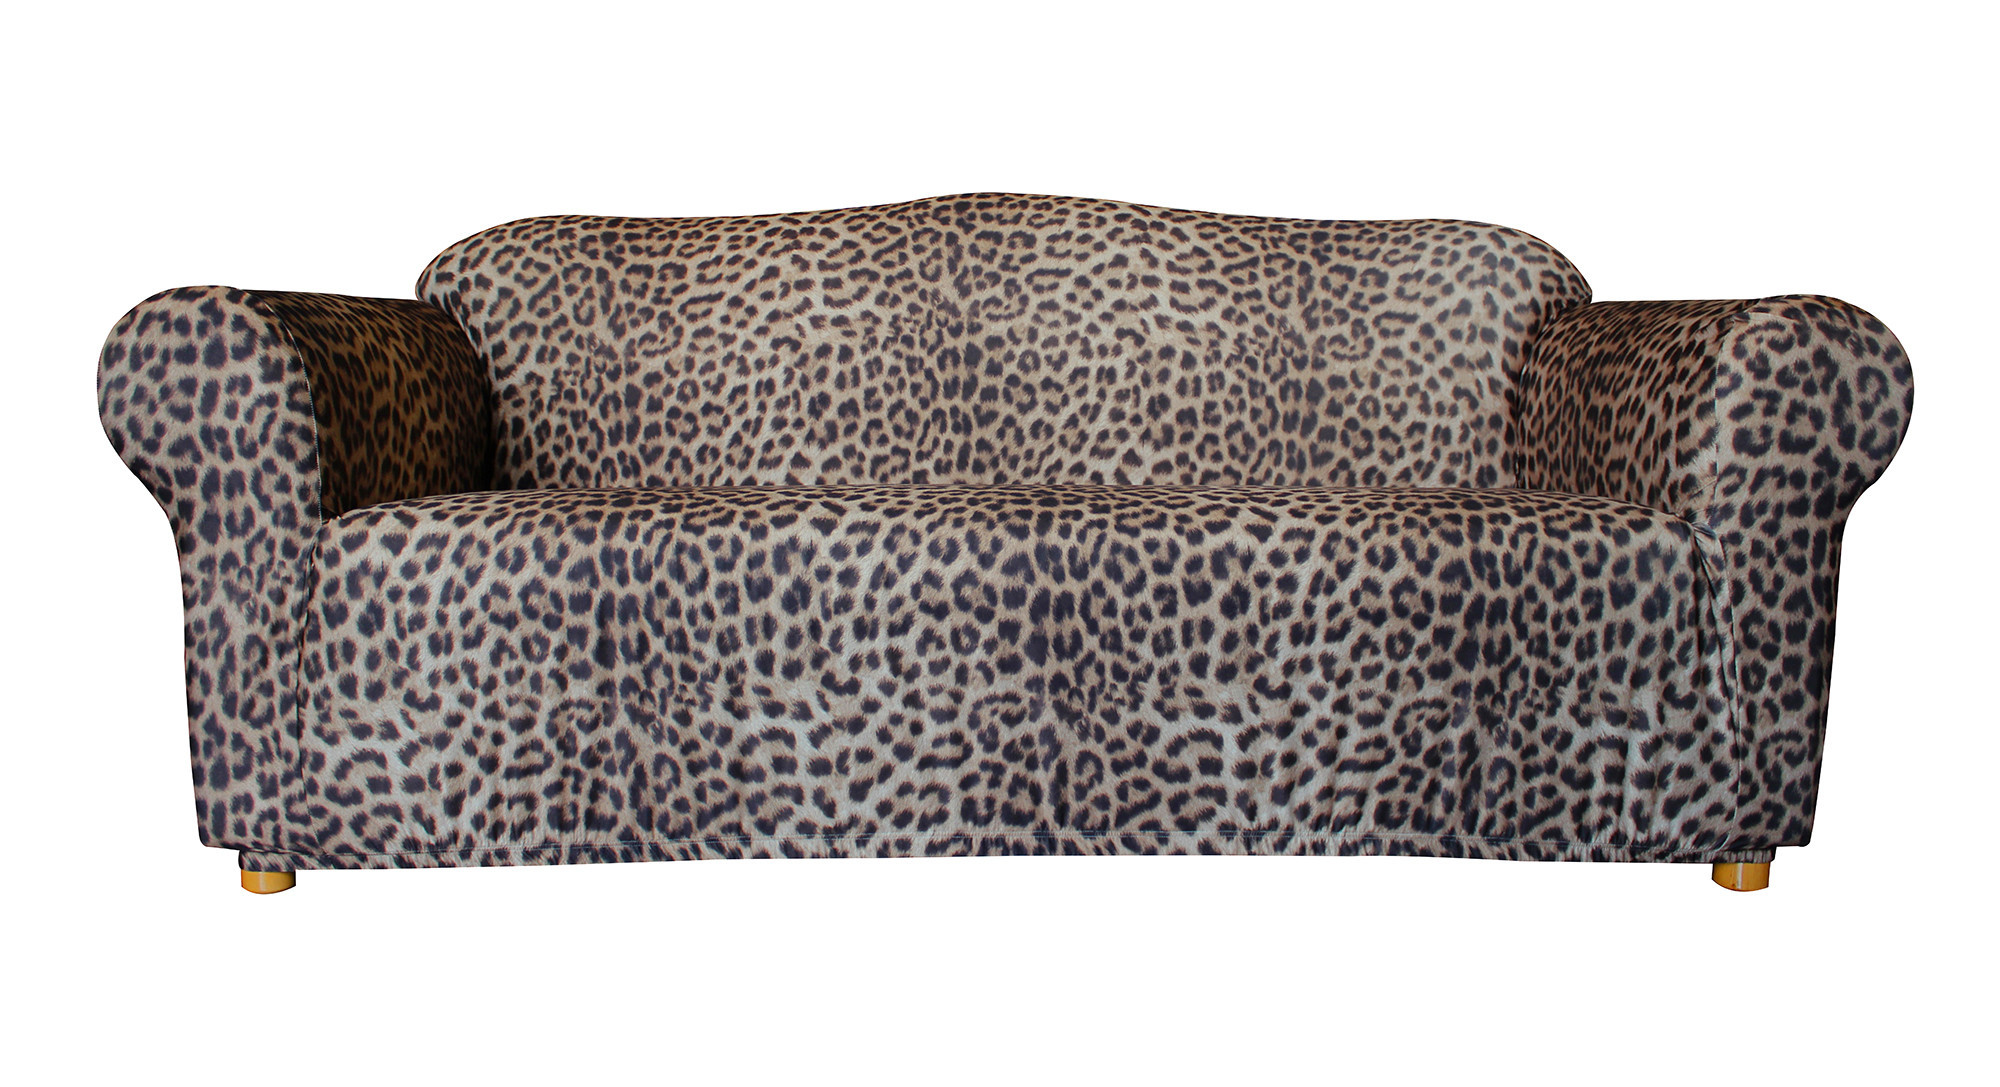 Statement Prints Leopard 3 Seater Sofa Cover